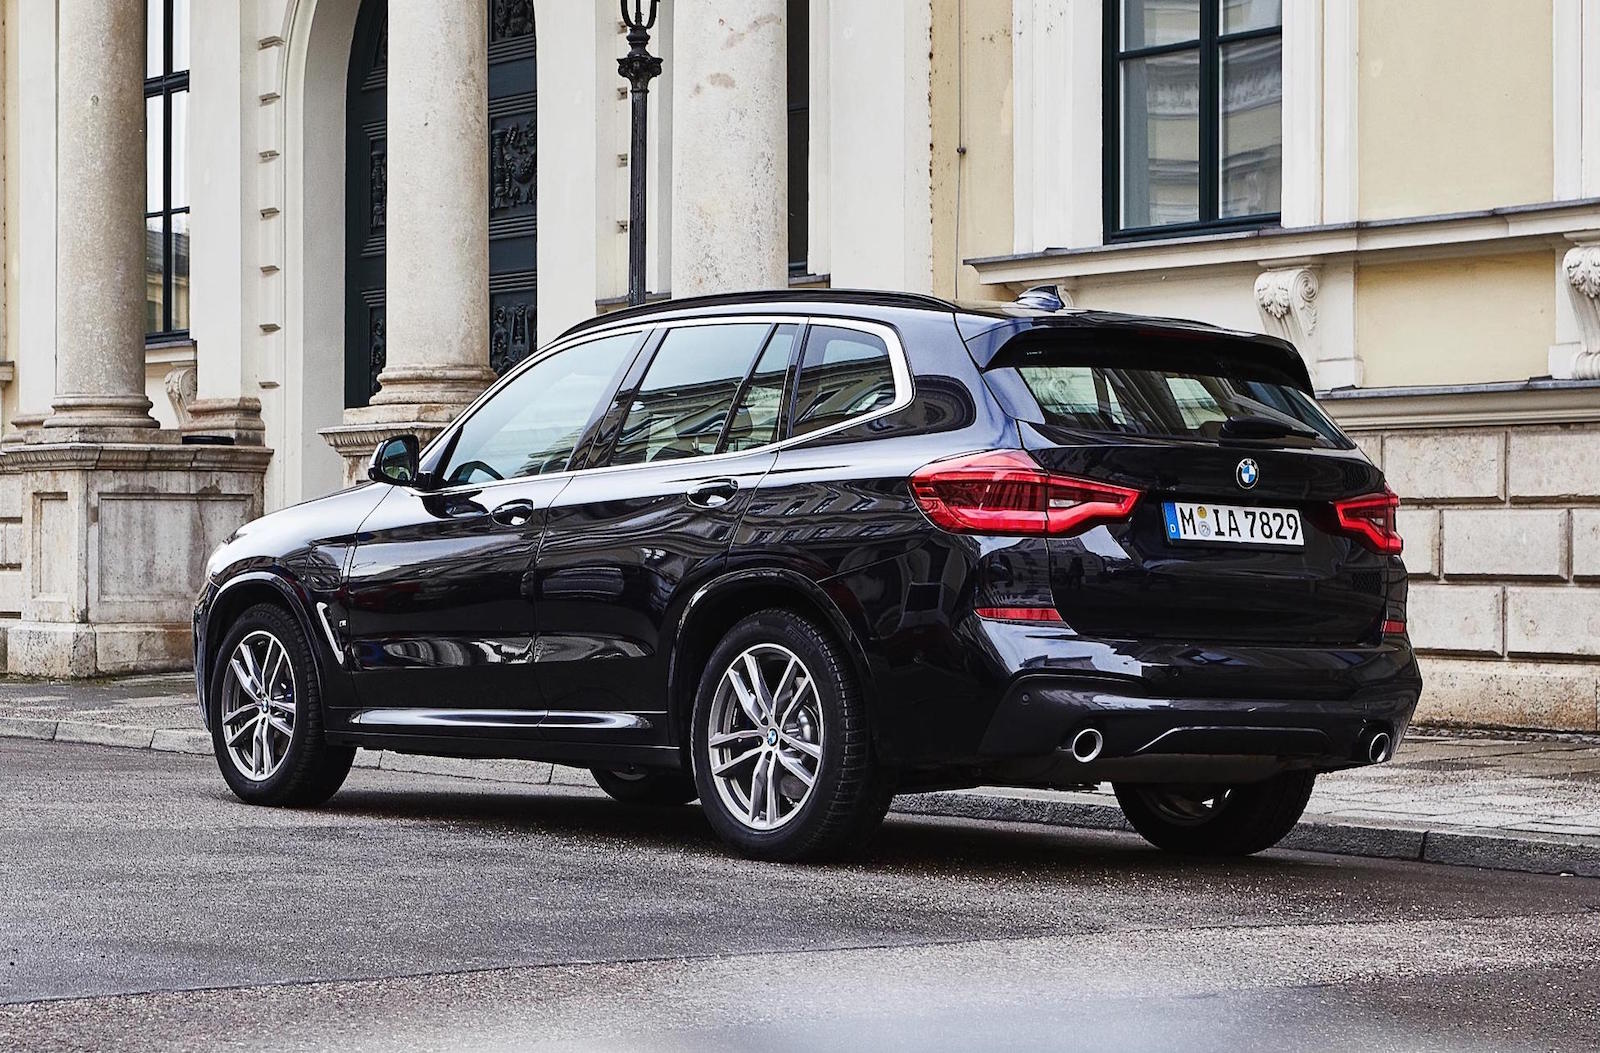 Bmw X3 Xdrive30e Debuts At Geneva Show With New 330e X5 Xdrive45e Performancedrive